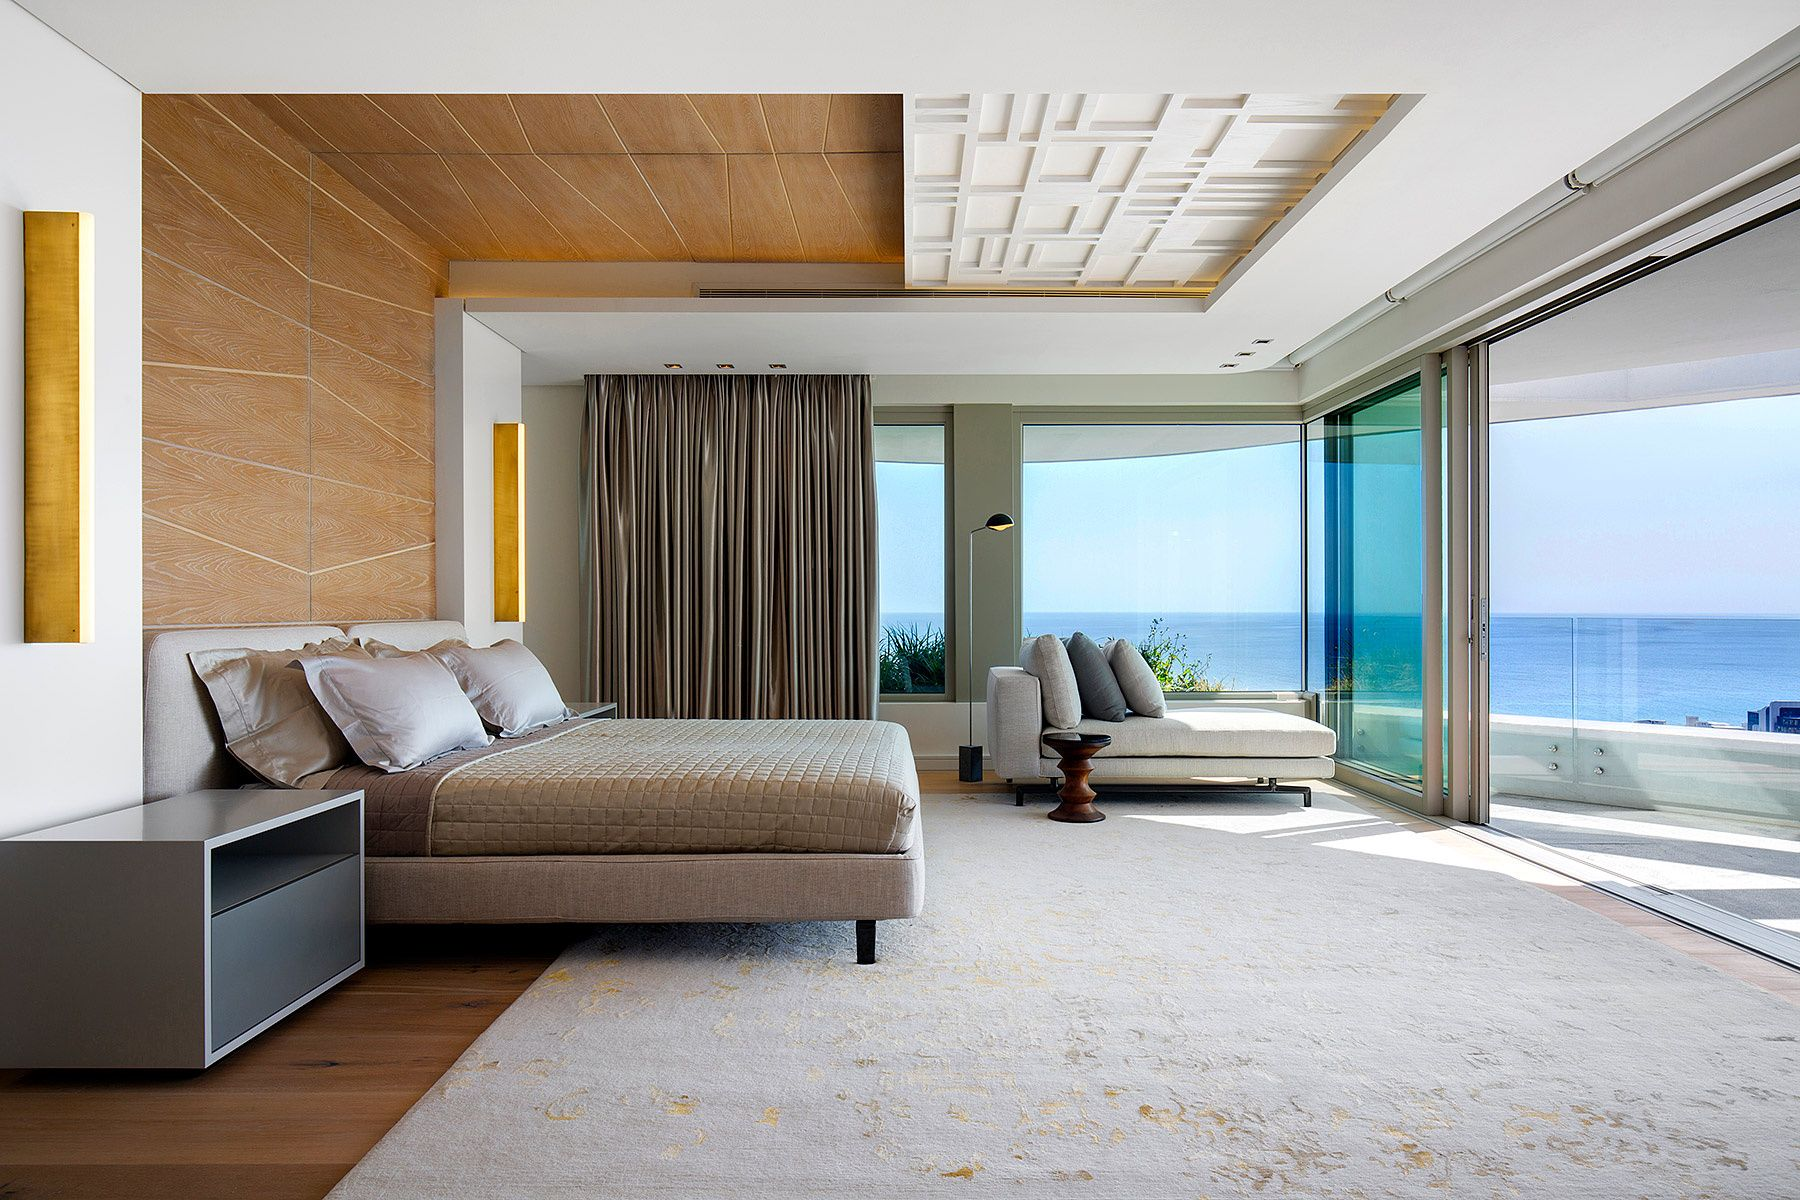 Master bedroom modern  Lifestyle and more details  Lifestyle u more  Pinterest  Bedrooms